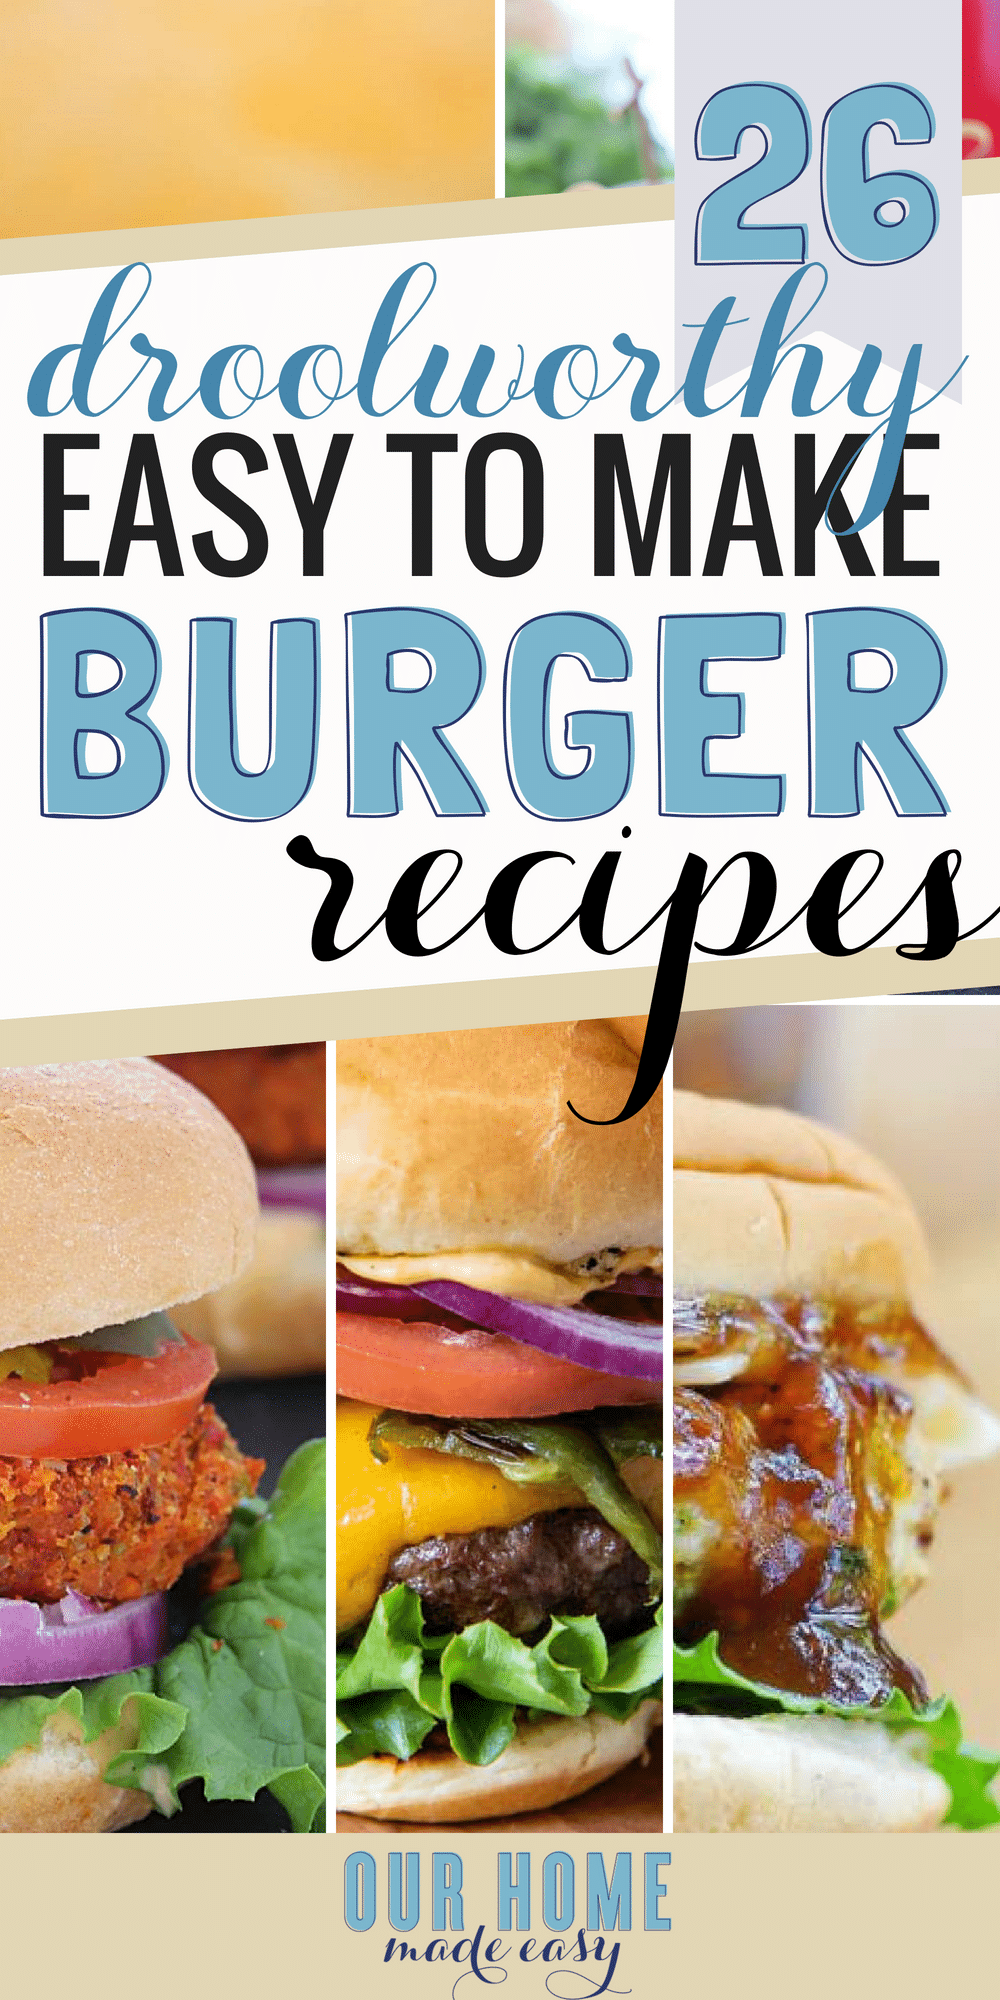 Never make a boring burger again! These 26 easy burger recipes are perfect for grilling out and enjoying dinner again! Click to see all the recipes! #dinnerrecipes #burgers #grilling #cheeseburgers #hamburgers #veggieburgers